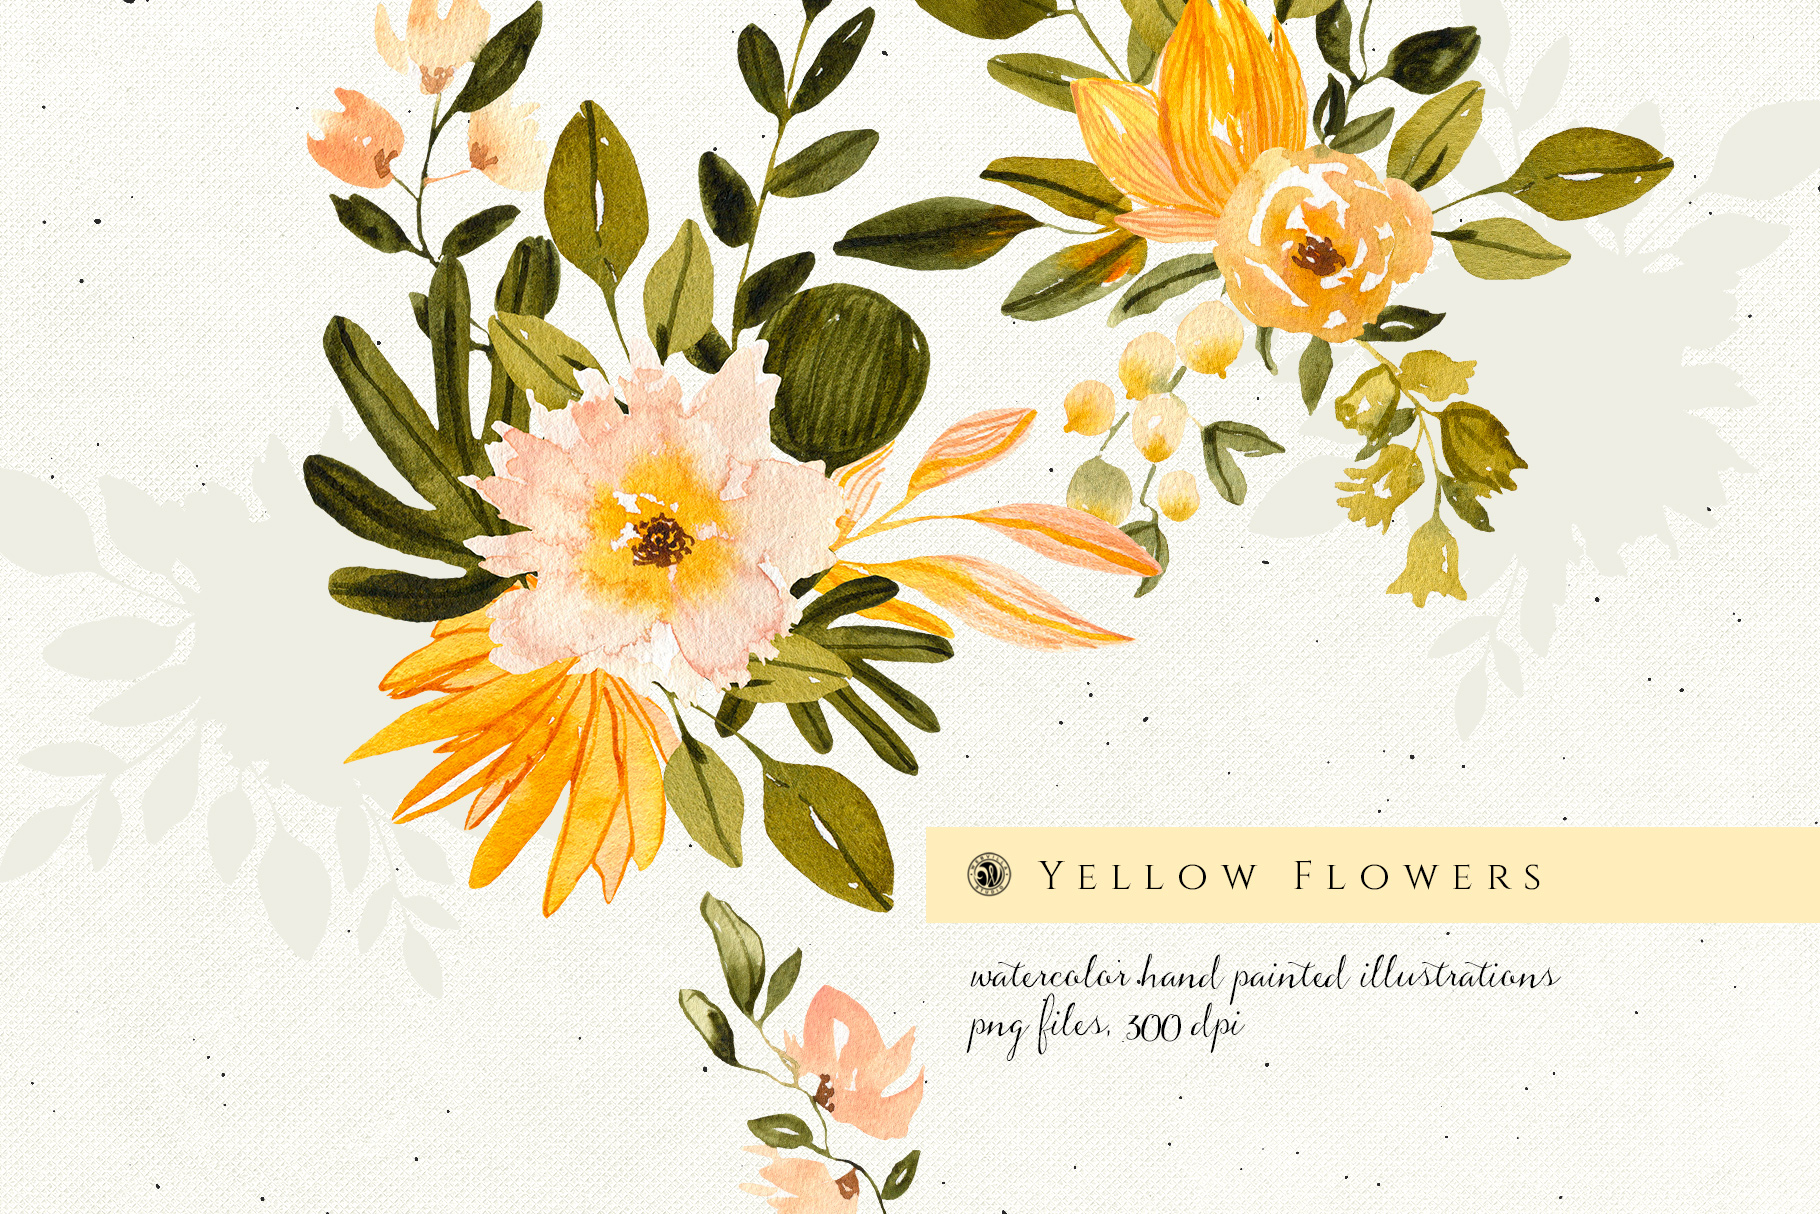 Yellow Flowers - Price $10